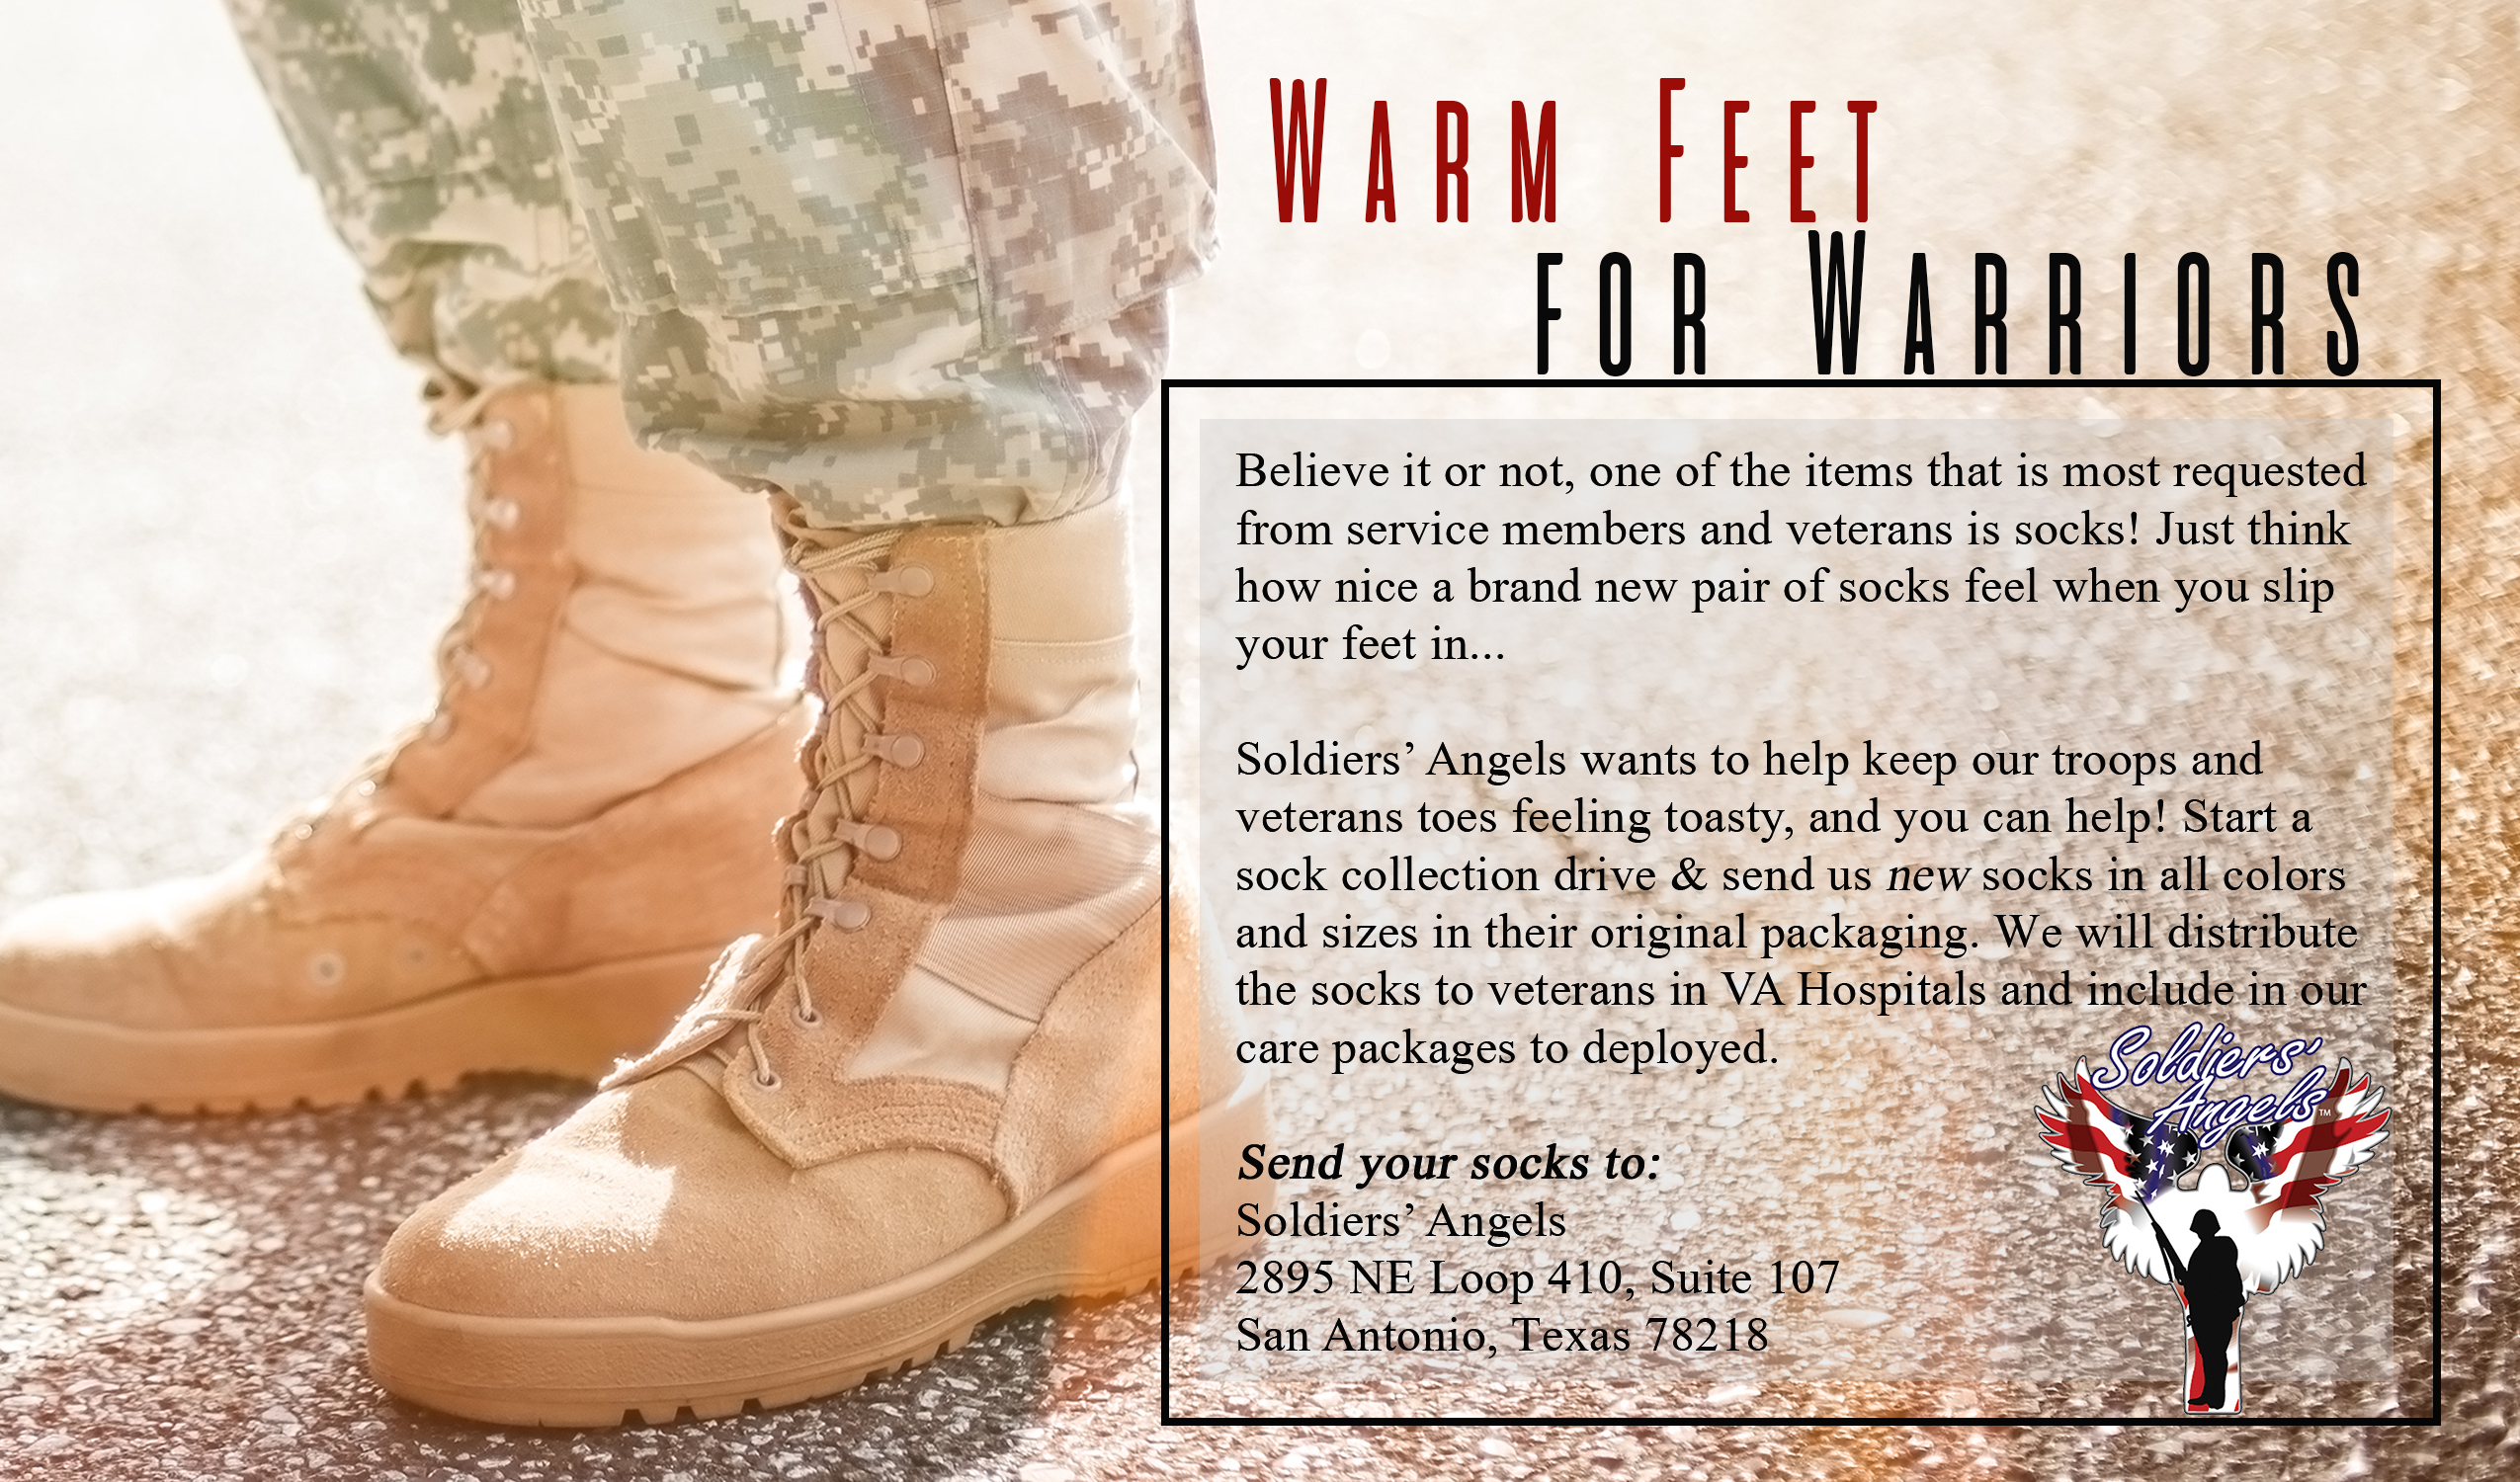 Soldiers' Angels - Warm Feet for Warriors